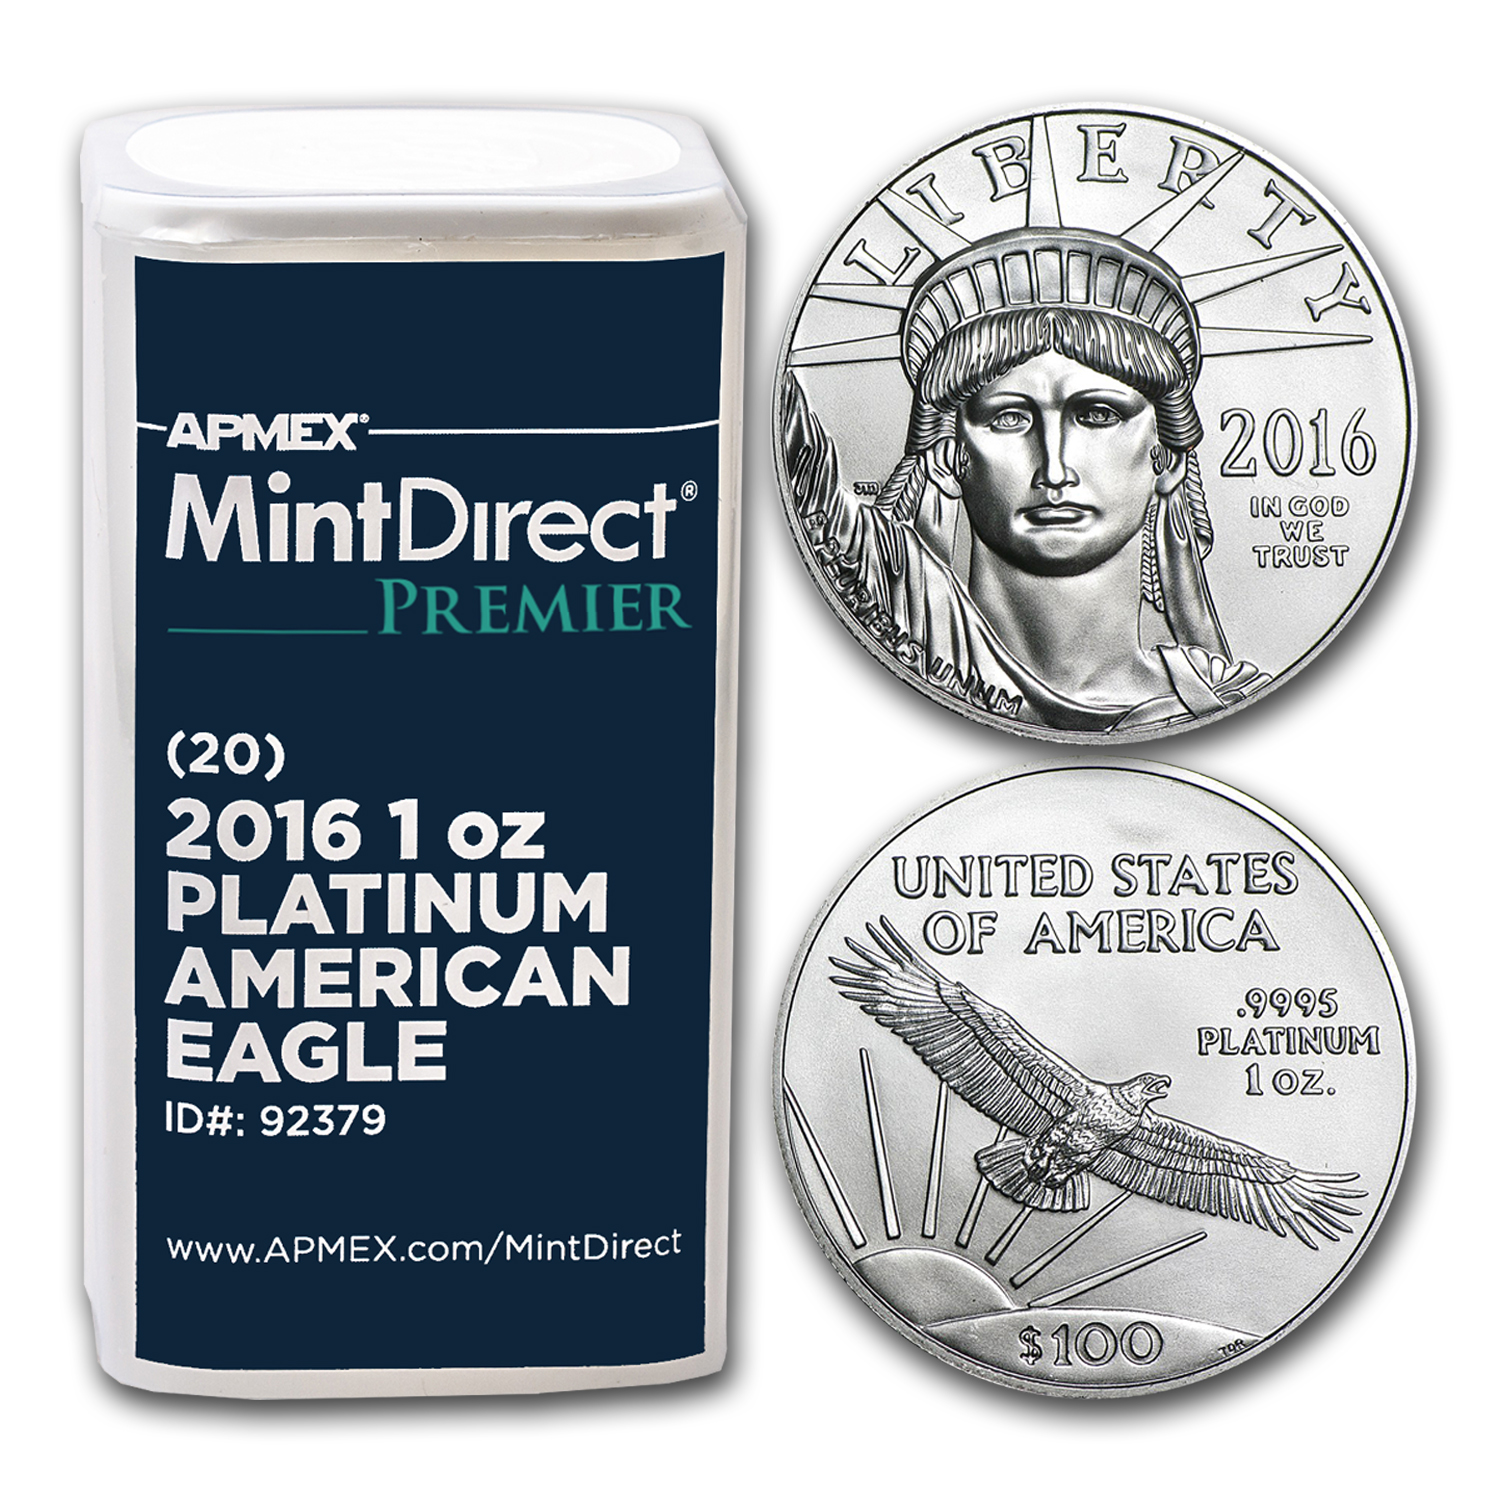 2016 1 Oz Platinum Eagle 20 Coin Mintdirect 174 Premier Tube